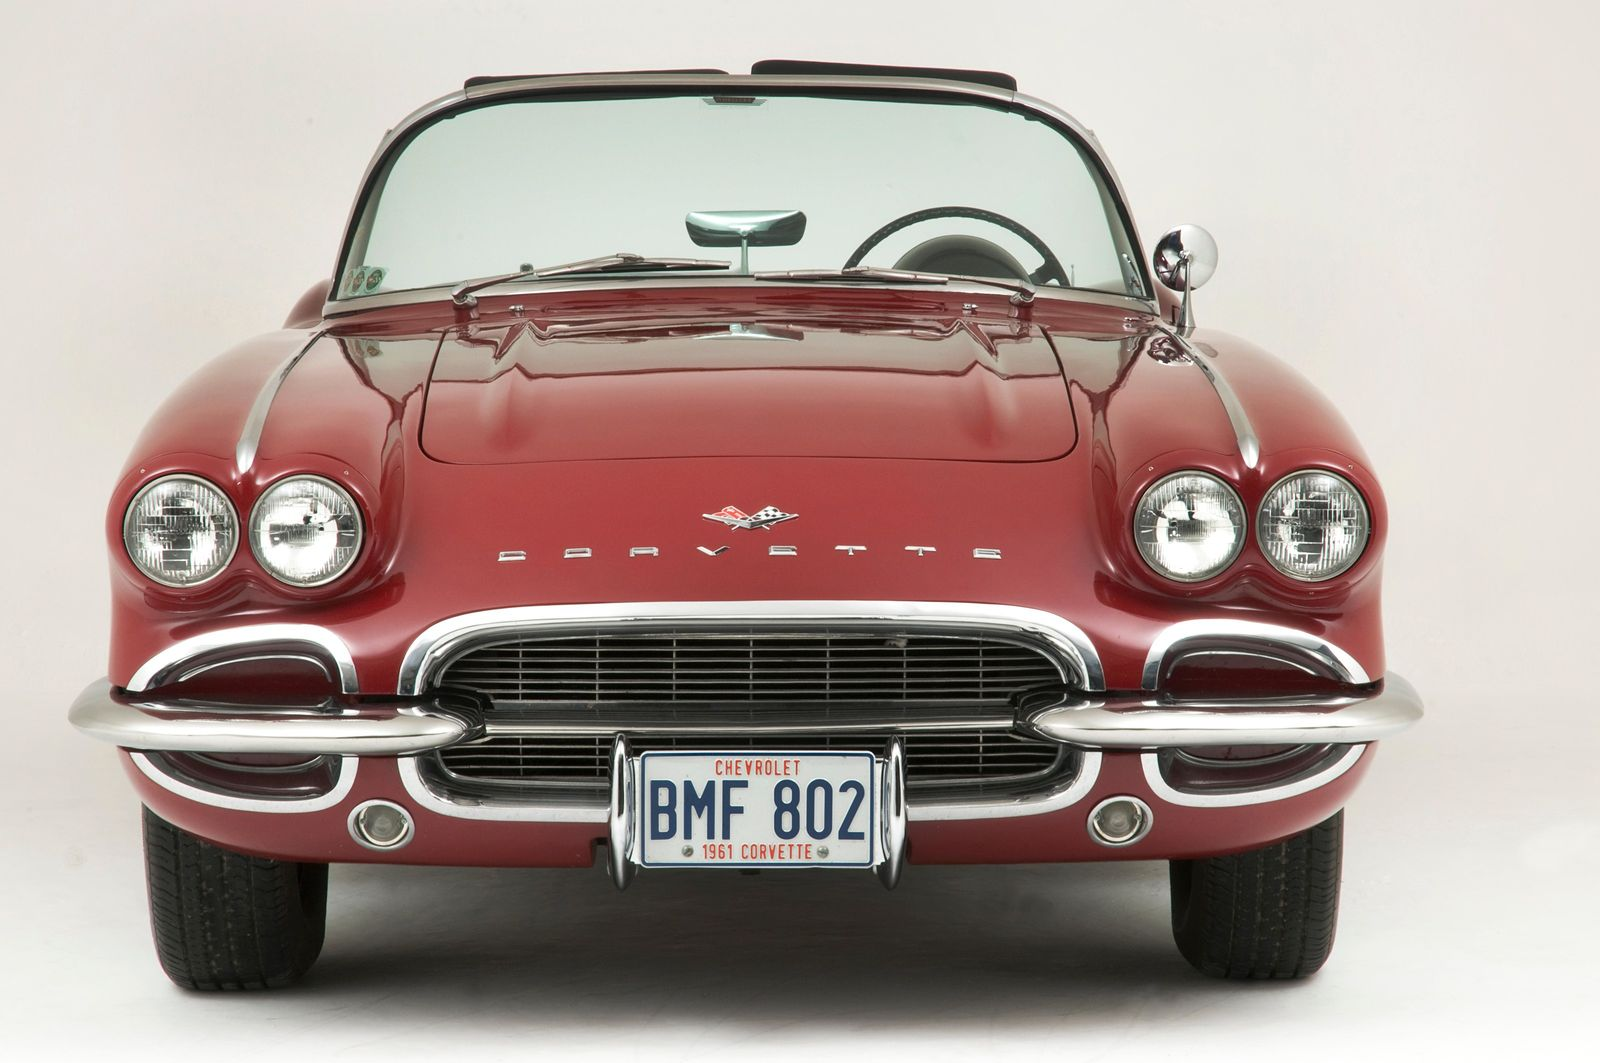 A 1961 model Chevrolet Corvette similar to the first cars 'leased' by the astronauts under Jim ...